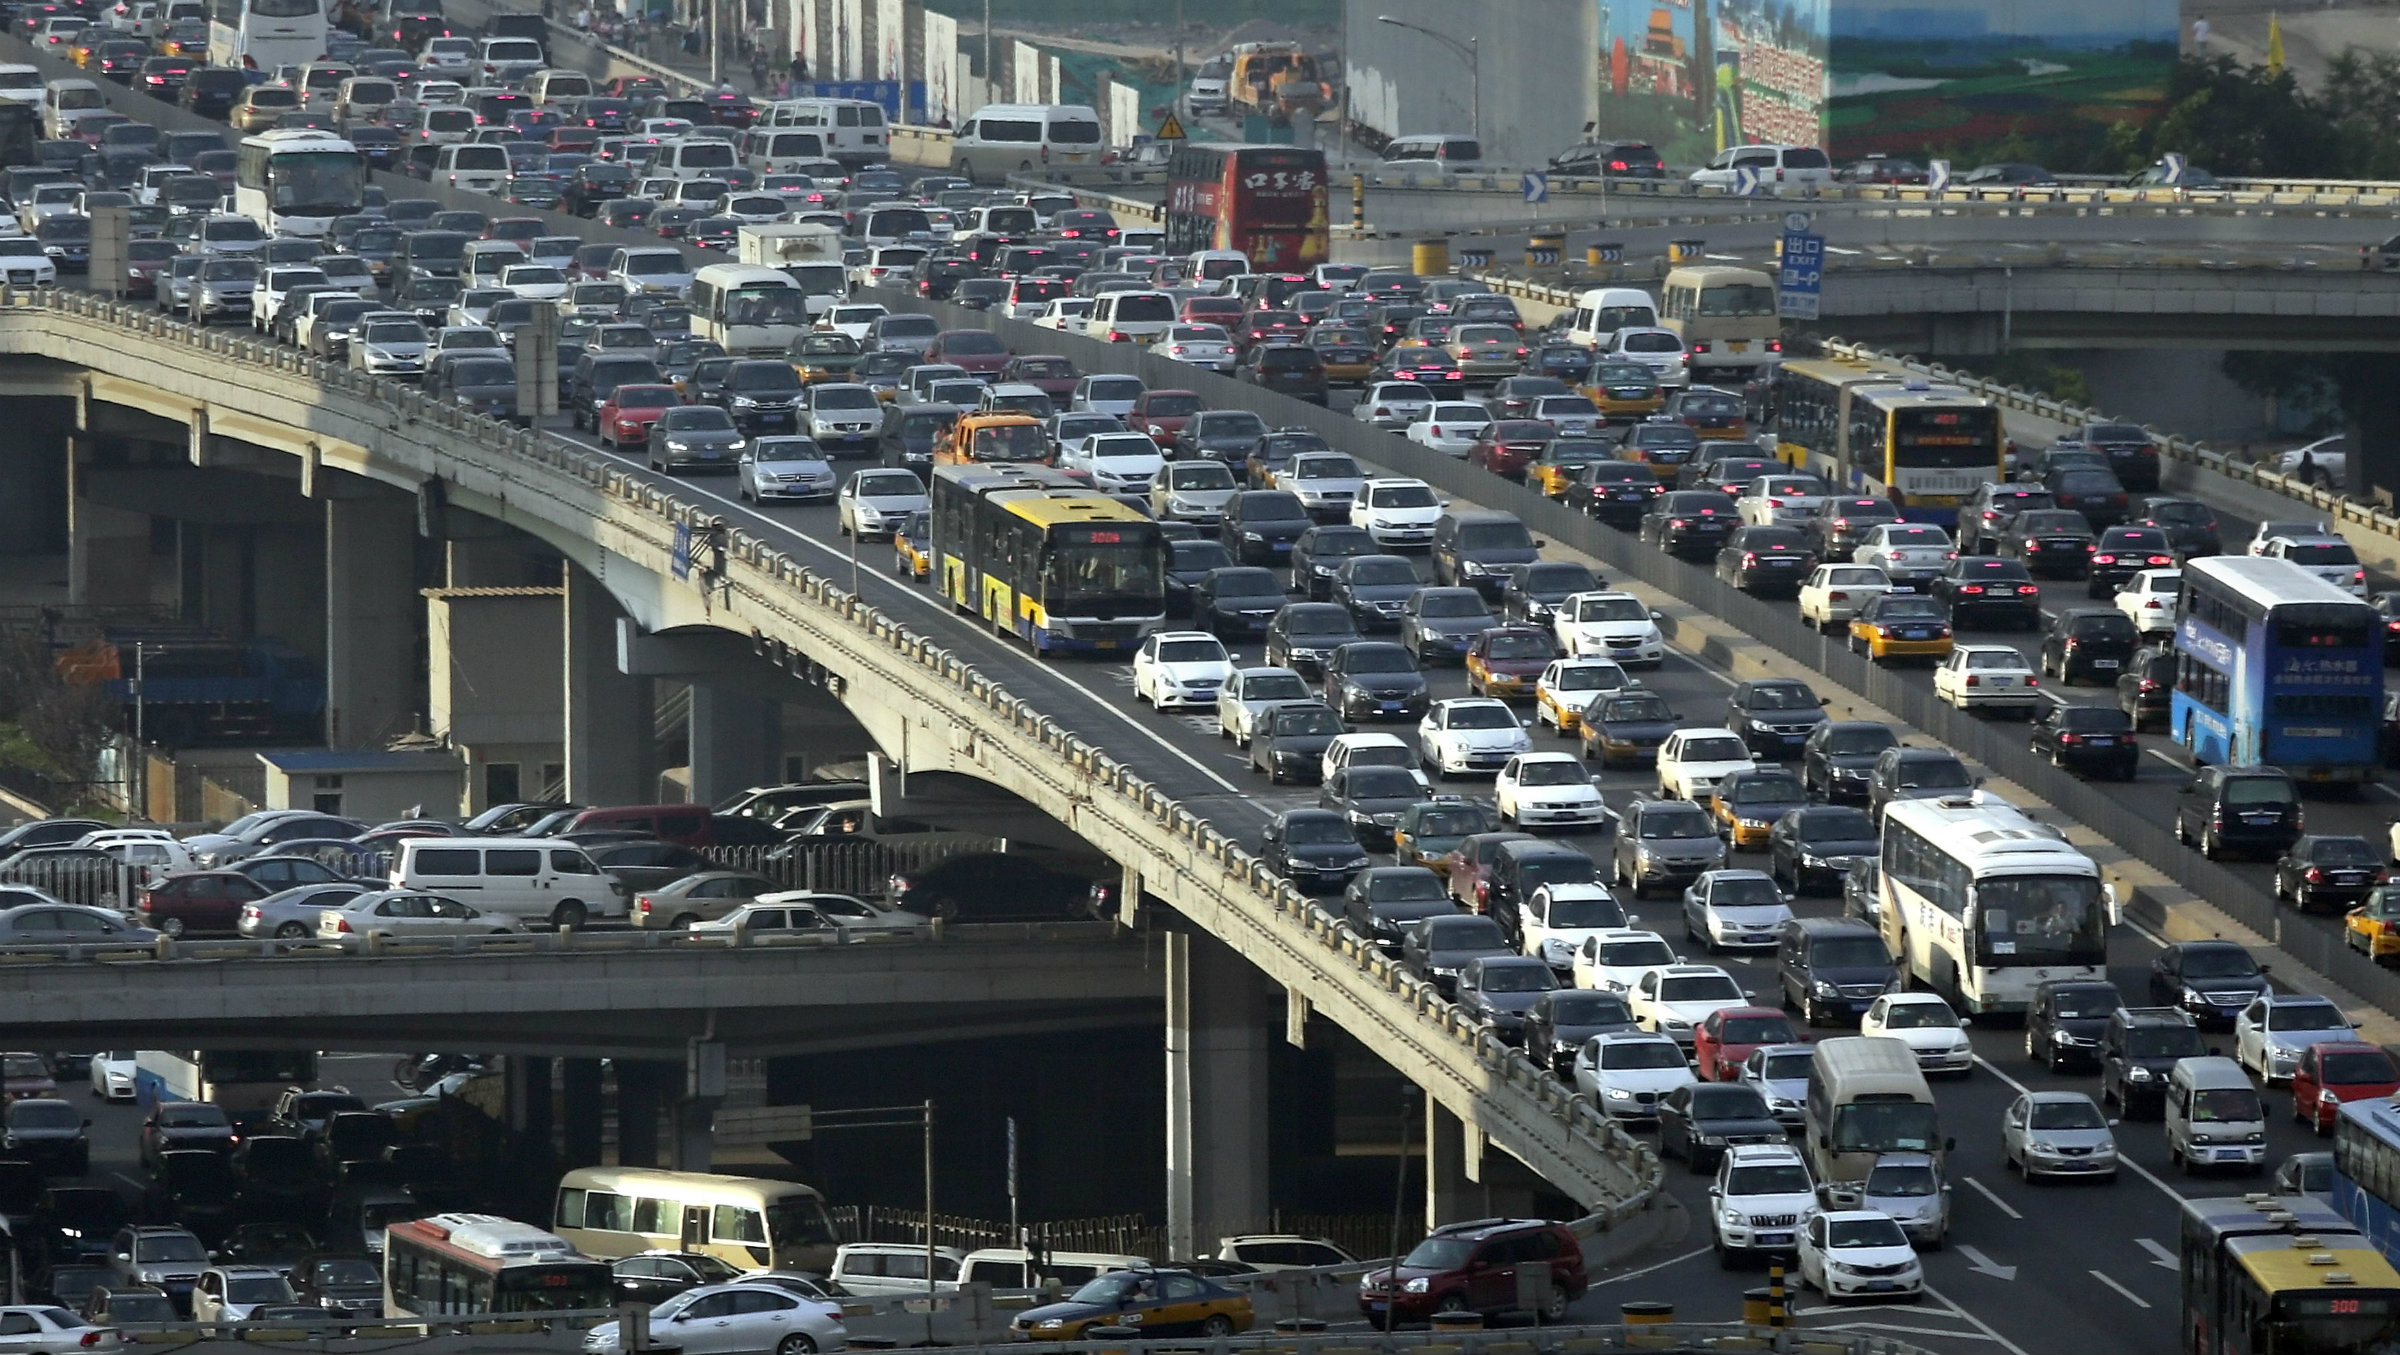 At this rate, Beijing's traffic is never going to improve.